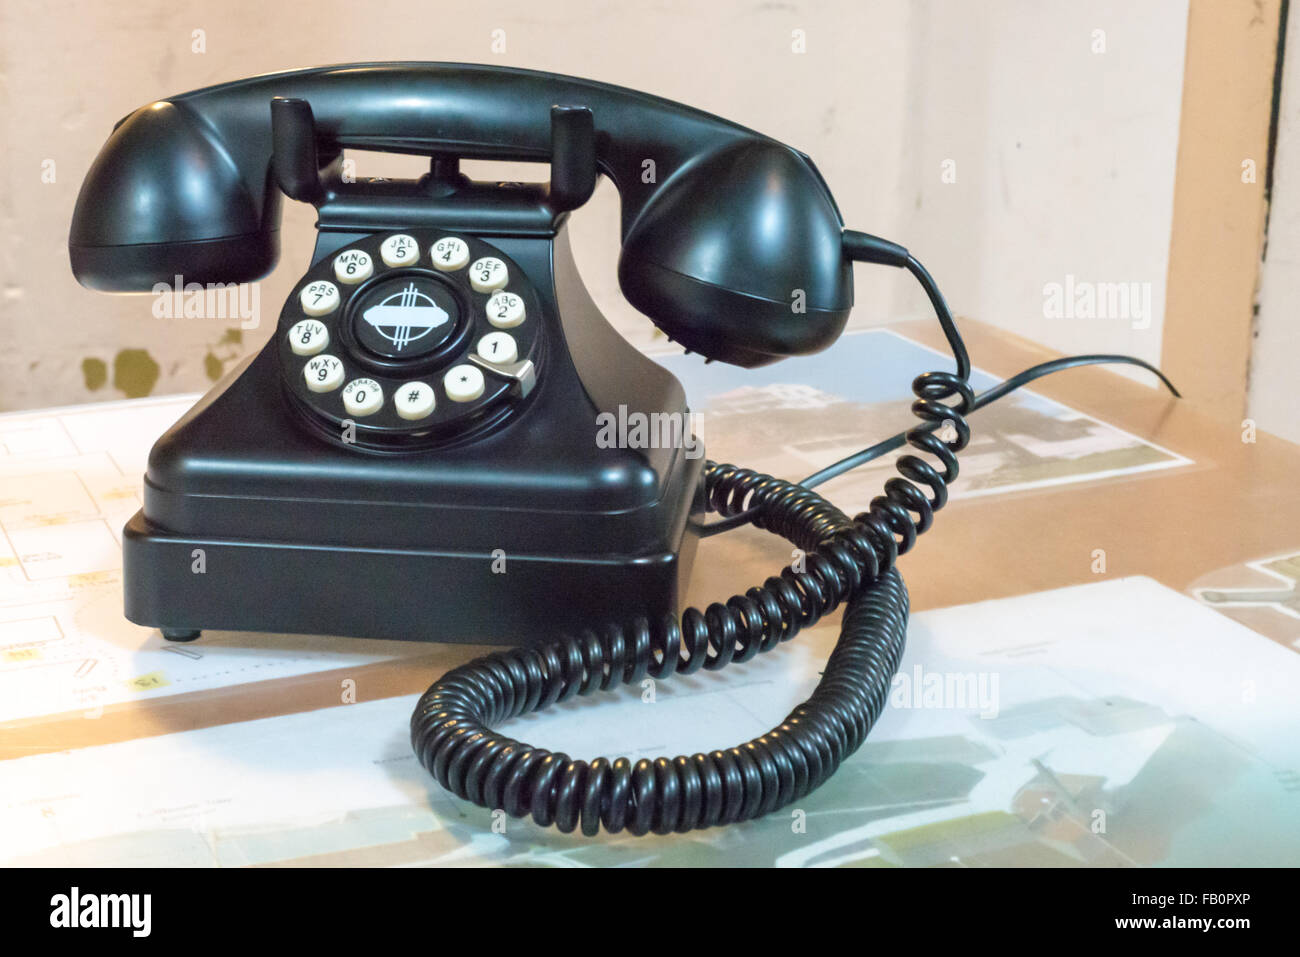 Old black bakelite telephone on a desk in Alcatraz prison - Stock Image